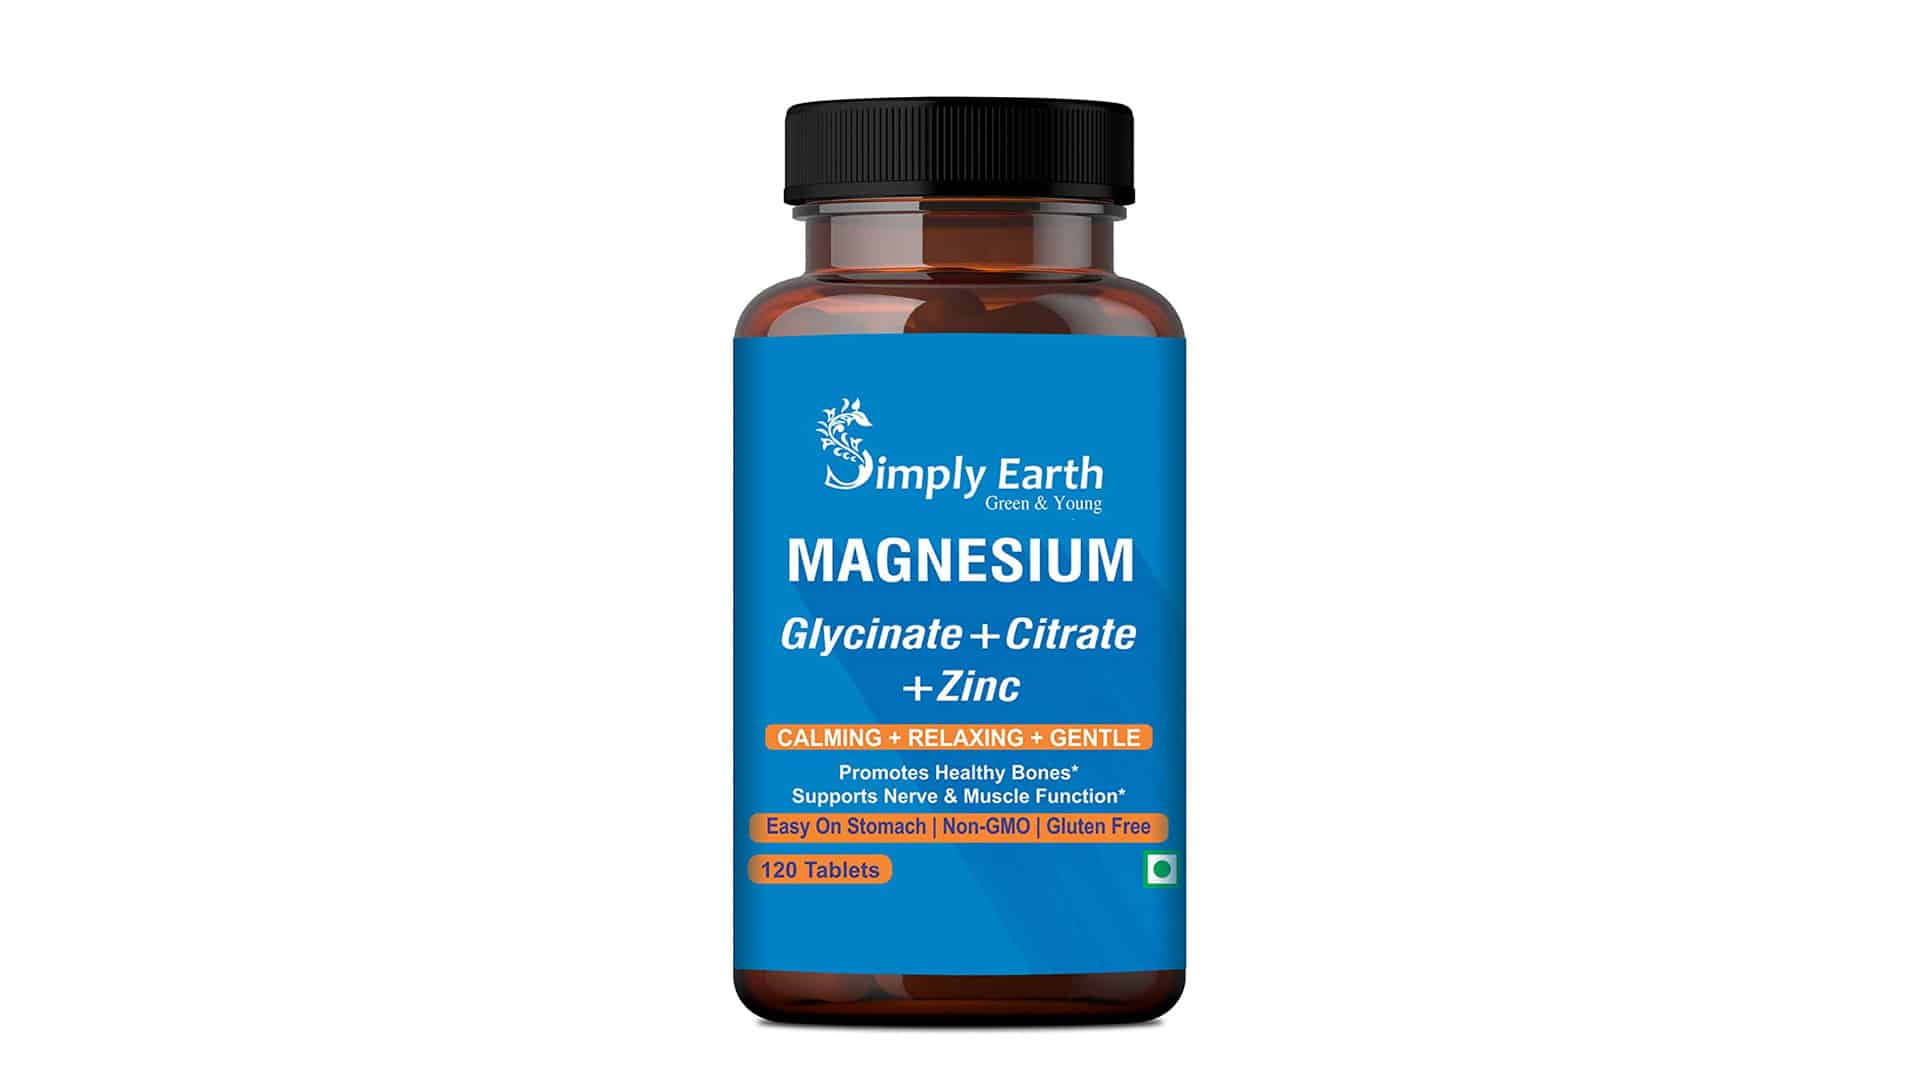 Simply Earth Magnesium Complex